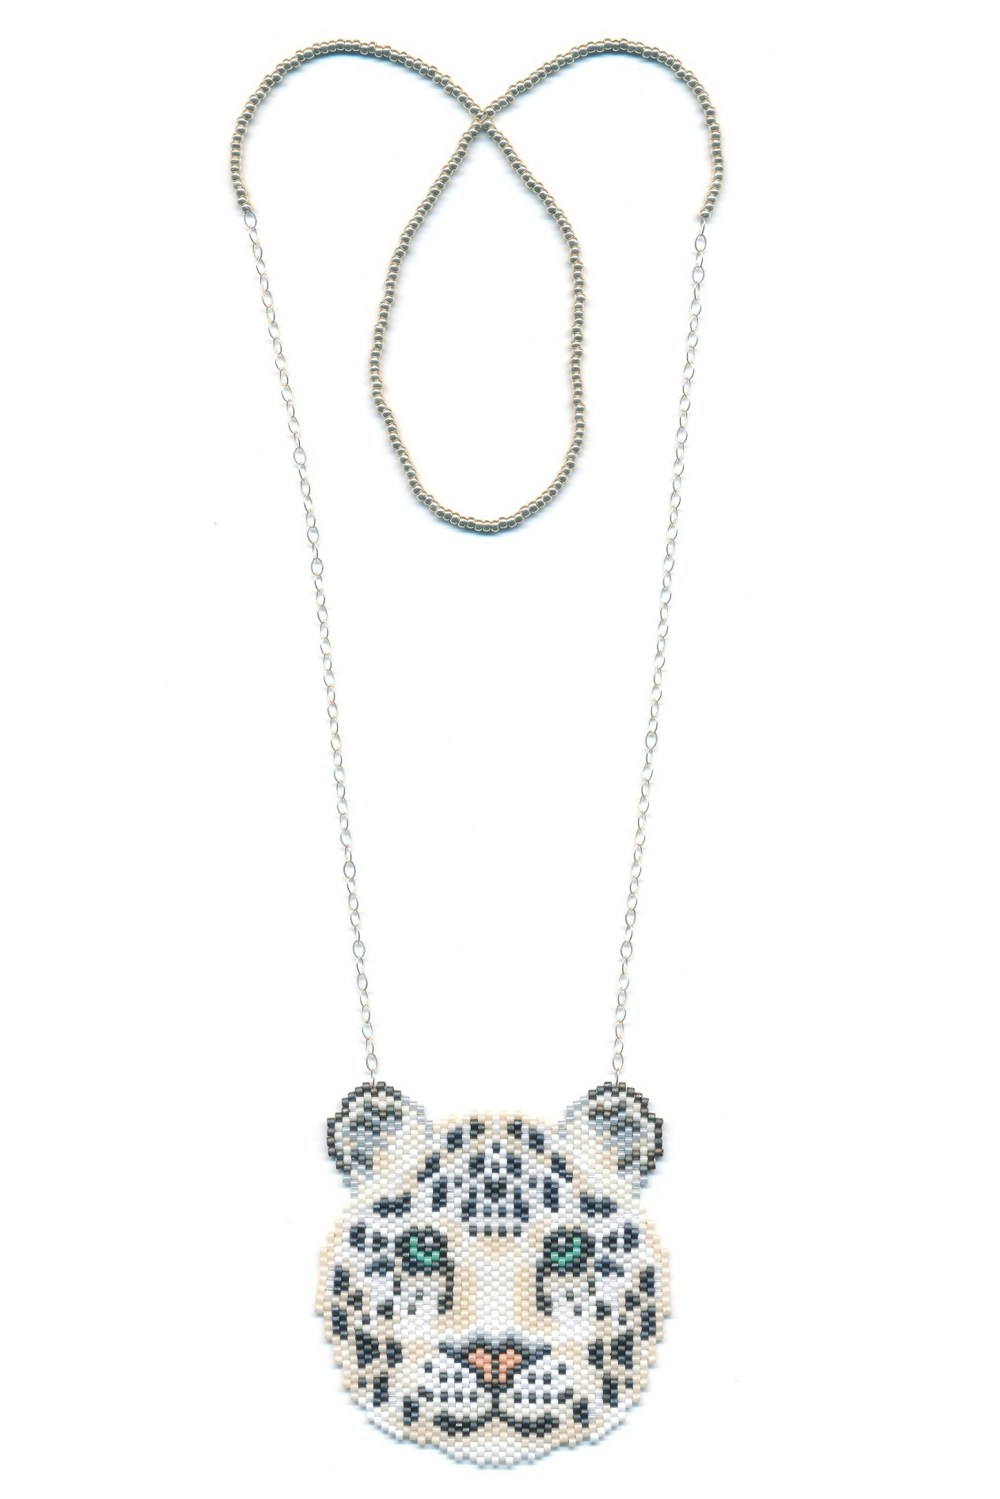 Snow Leopard Beaded Necklace